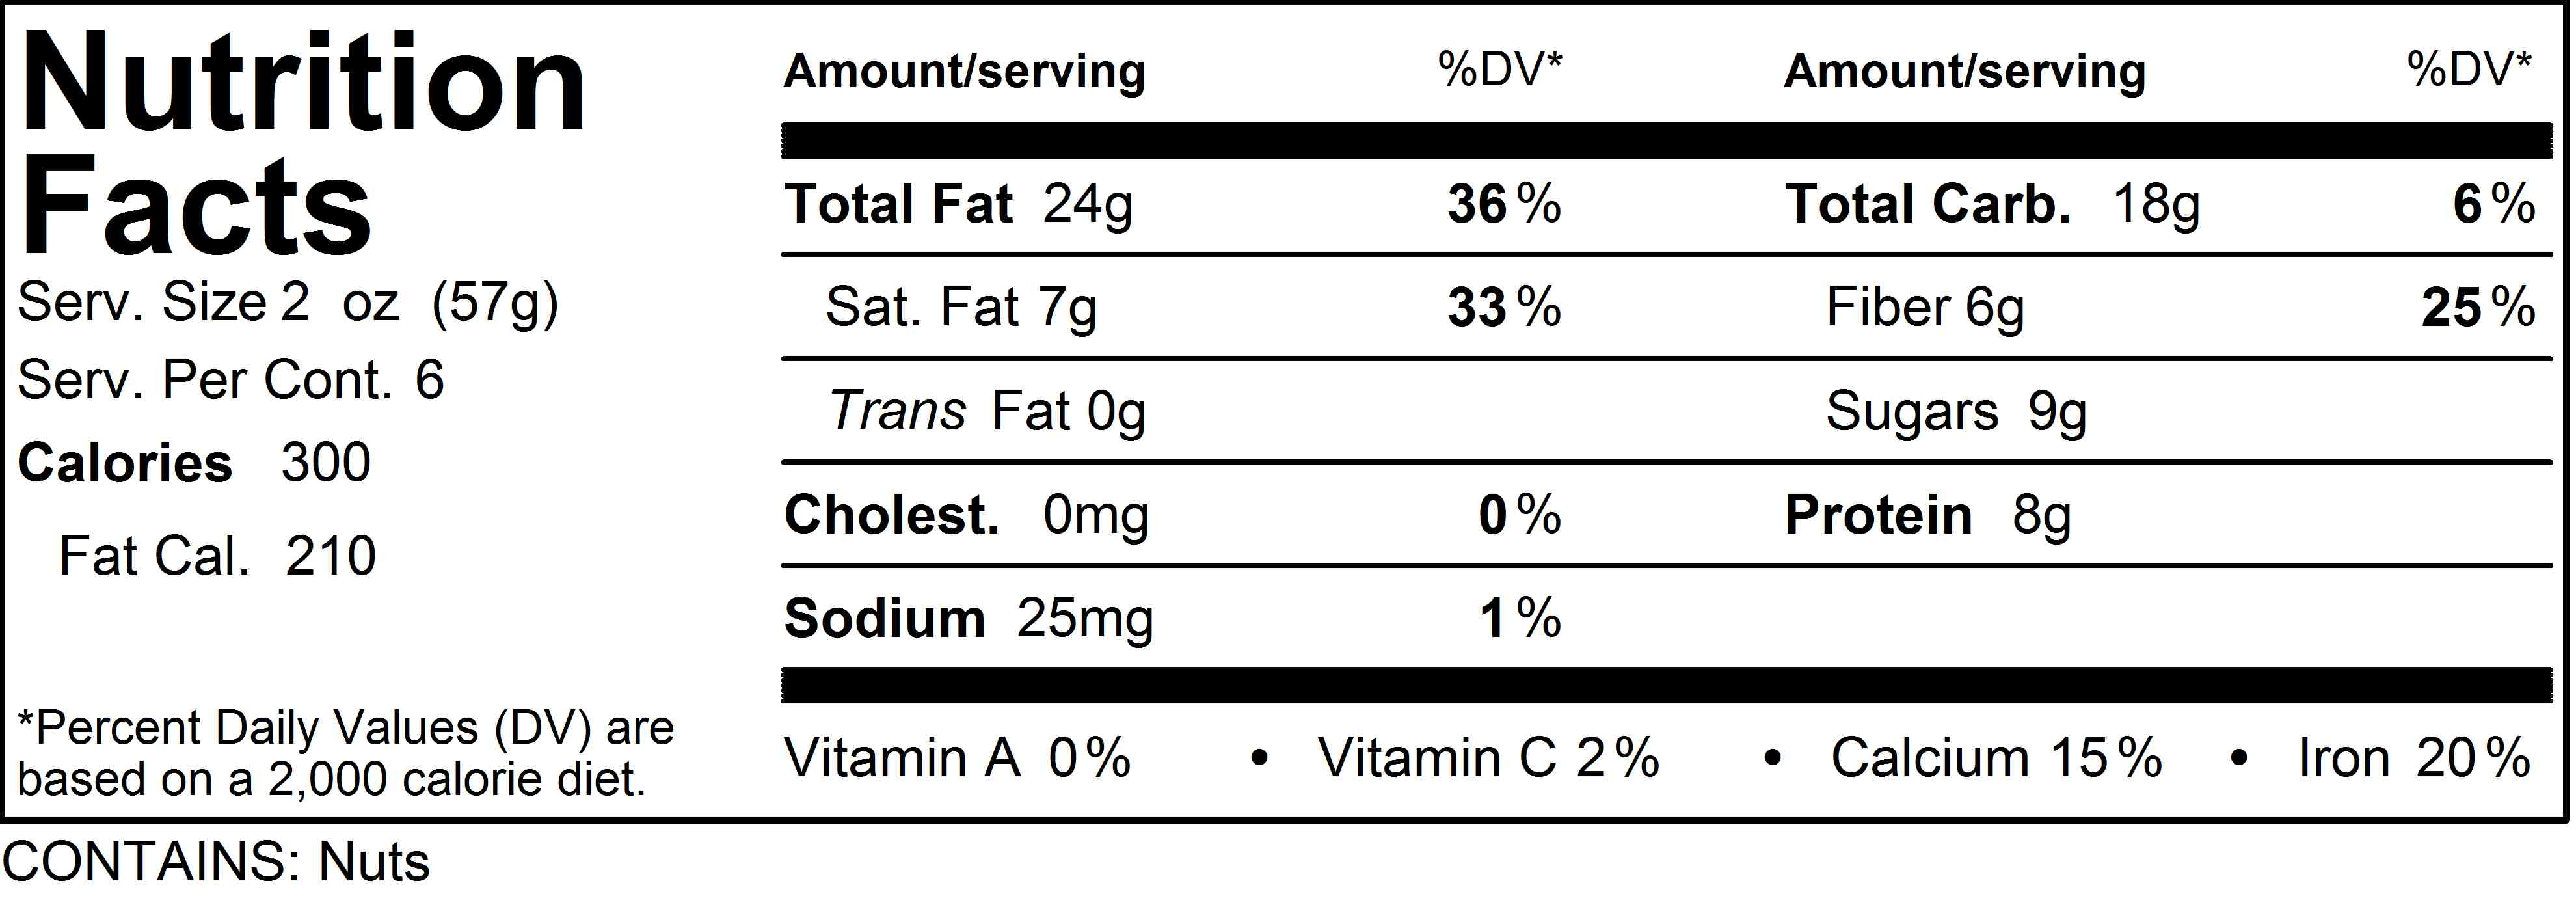 nutrition information on food labels Results across six product categories, 168% of shoppers were found to have looked for nutrition information on the label, with the nutrition grid (table or list), gda labels and the ingredients list as the main sources consulted and calories, fat and sugar the information most often looked for.